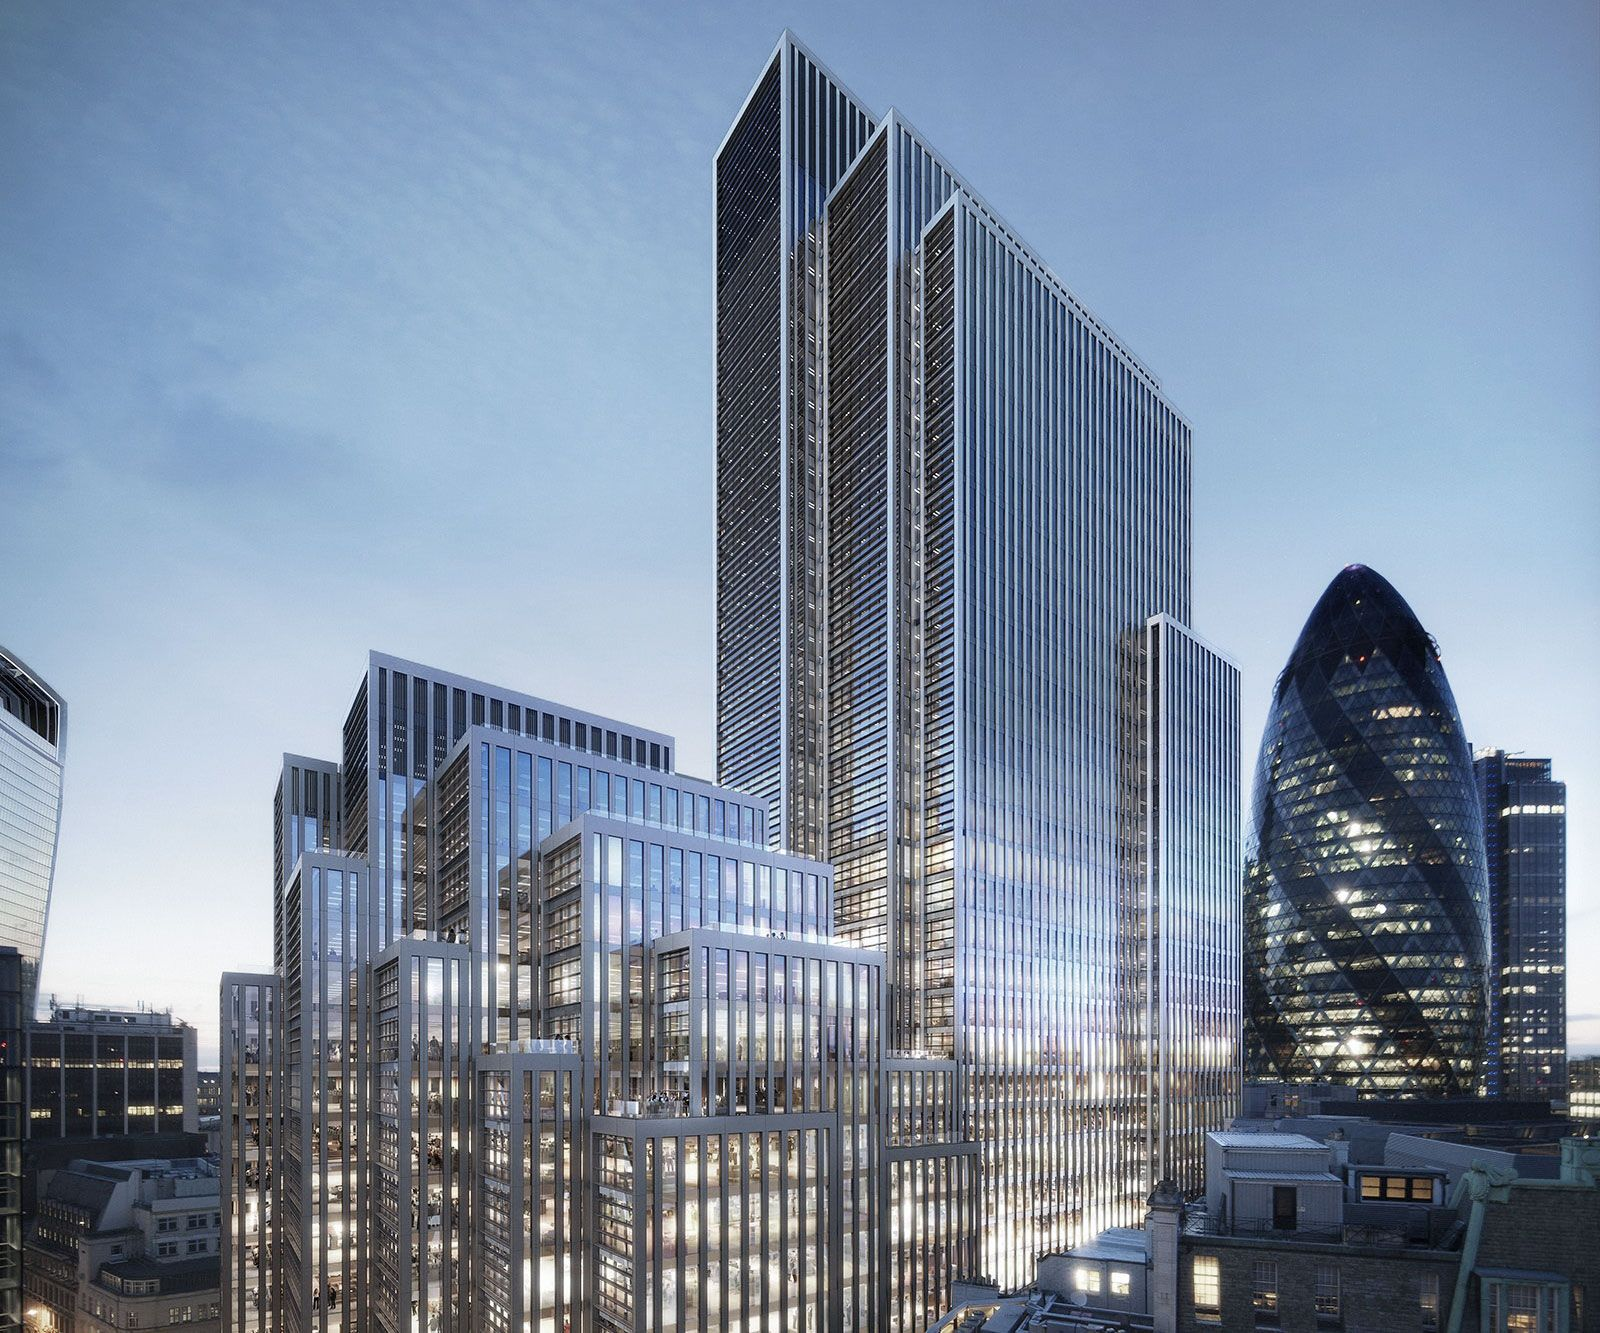 IMG_Insights_Planning_And_Policy_Londons_Towers_Nicknames_40_Leadenhall_Street